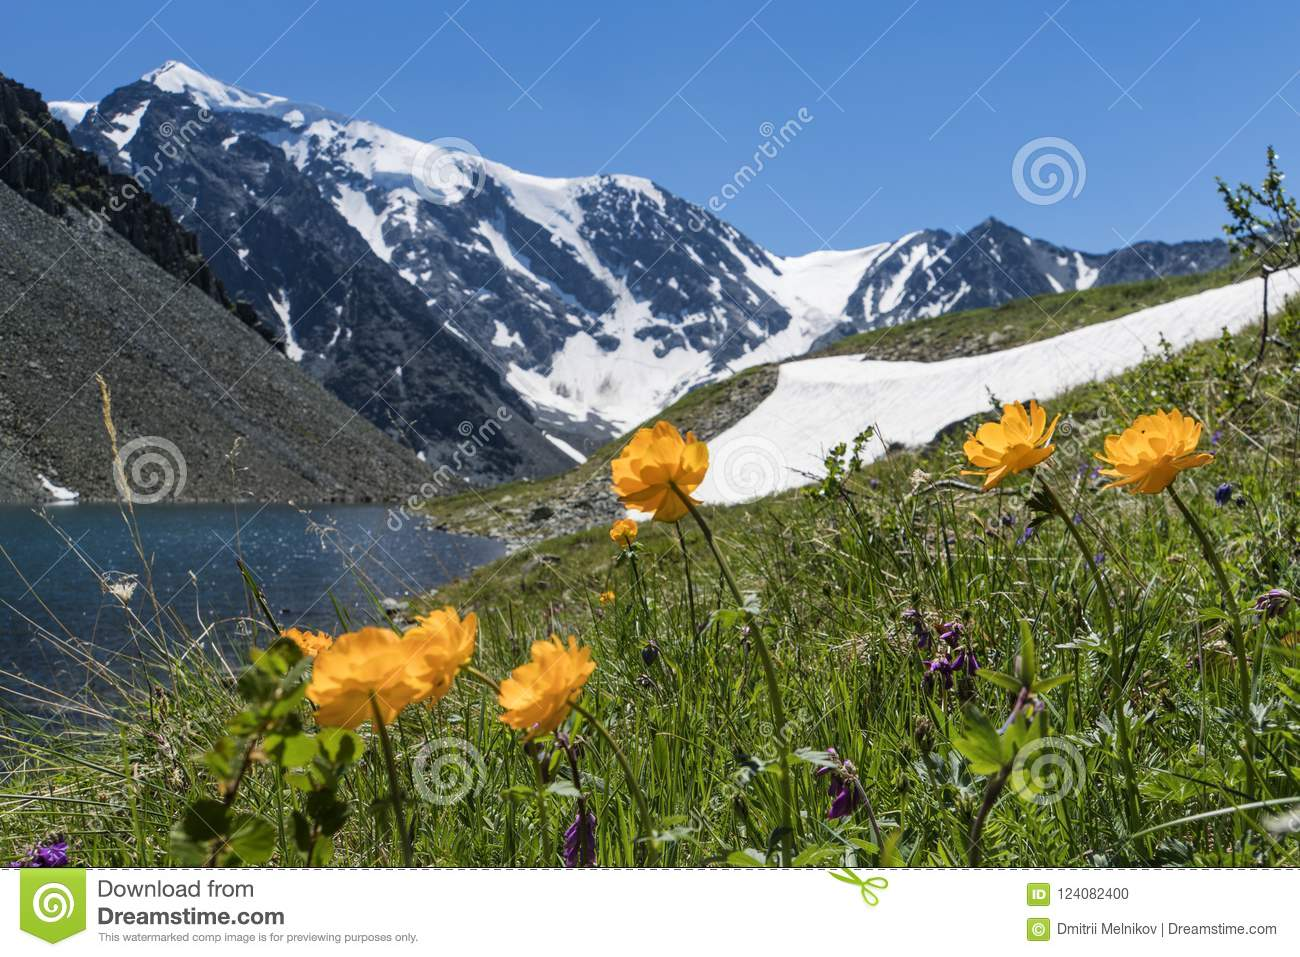 Landscape lake mountain flower picturesque snowy picturesboss beautiful flowers background mountain lake snowy peaks high mountains altai wildlife siberia russ orange yellow image izmirmasajfo